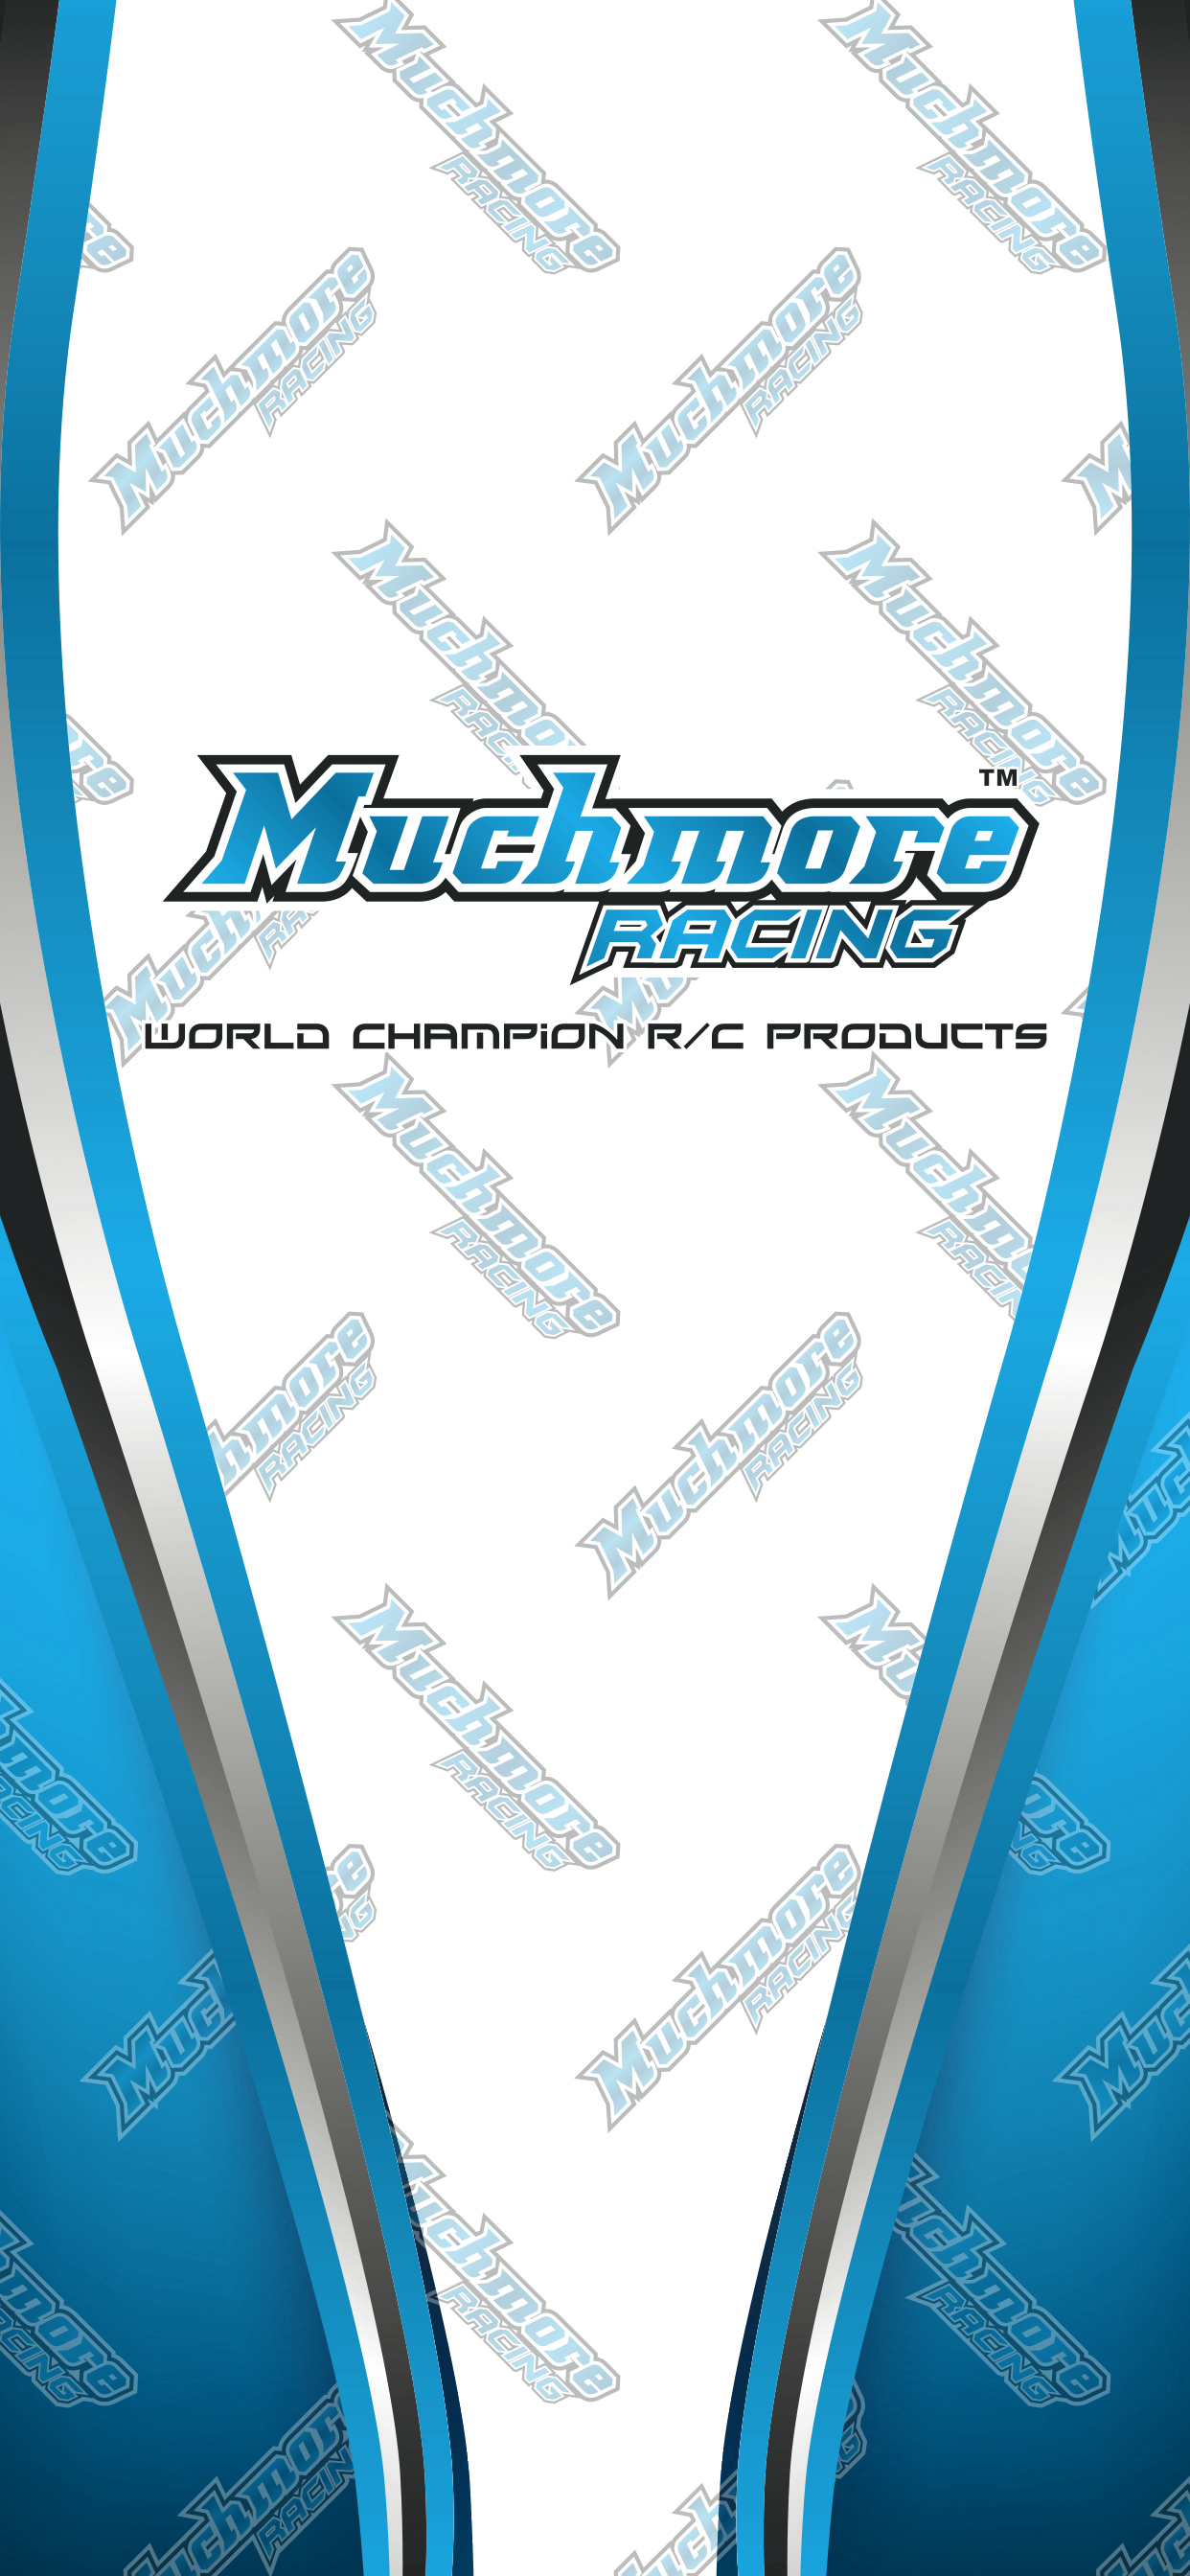 MuchmoreRacing_Wallpaper_Blue_Ver_Apple iPhone 195by9 ratio.JPG